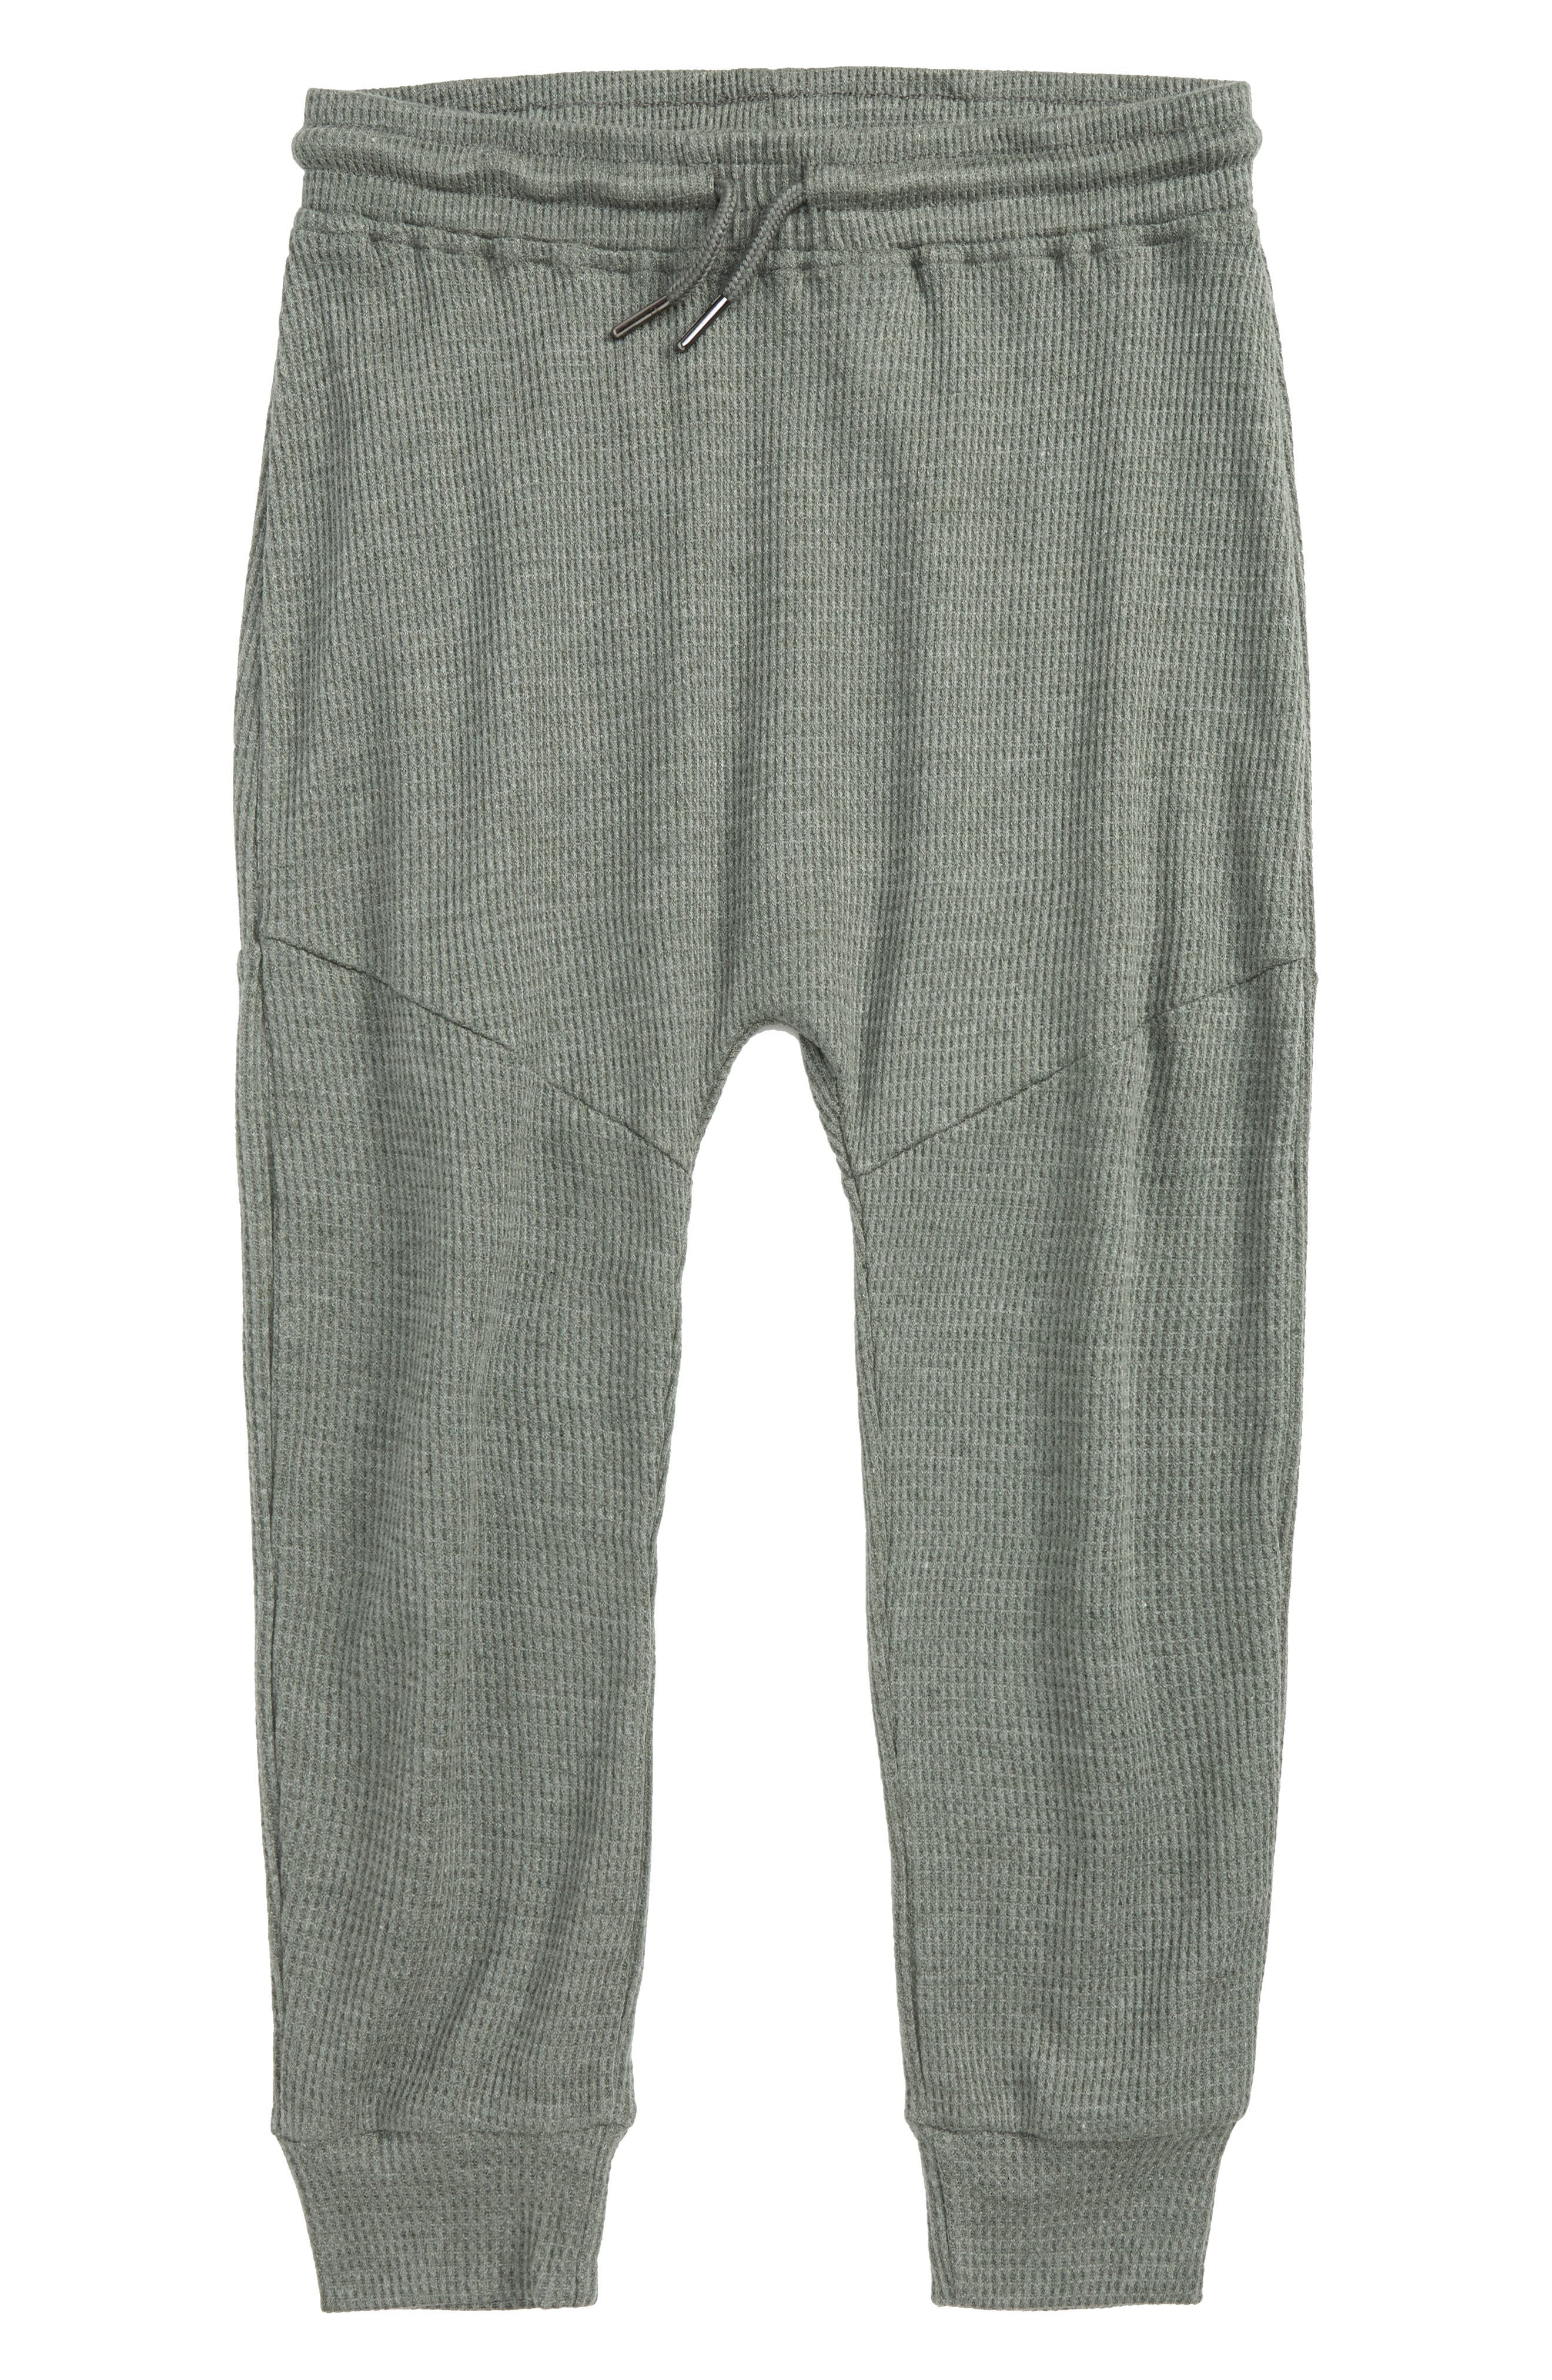 Jude Thermal Knit Jogger Pants,                         Main,                         color, Olive Heather